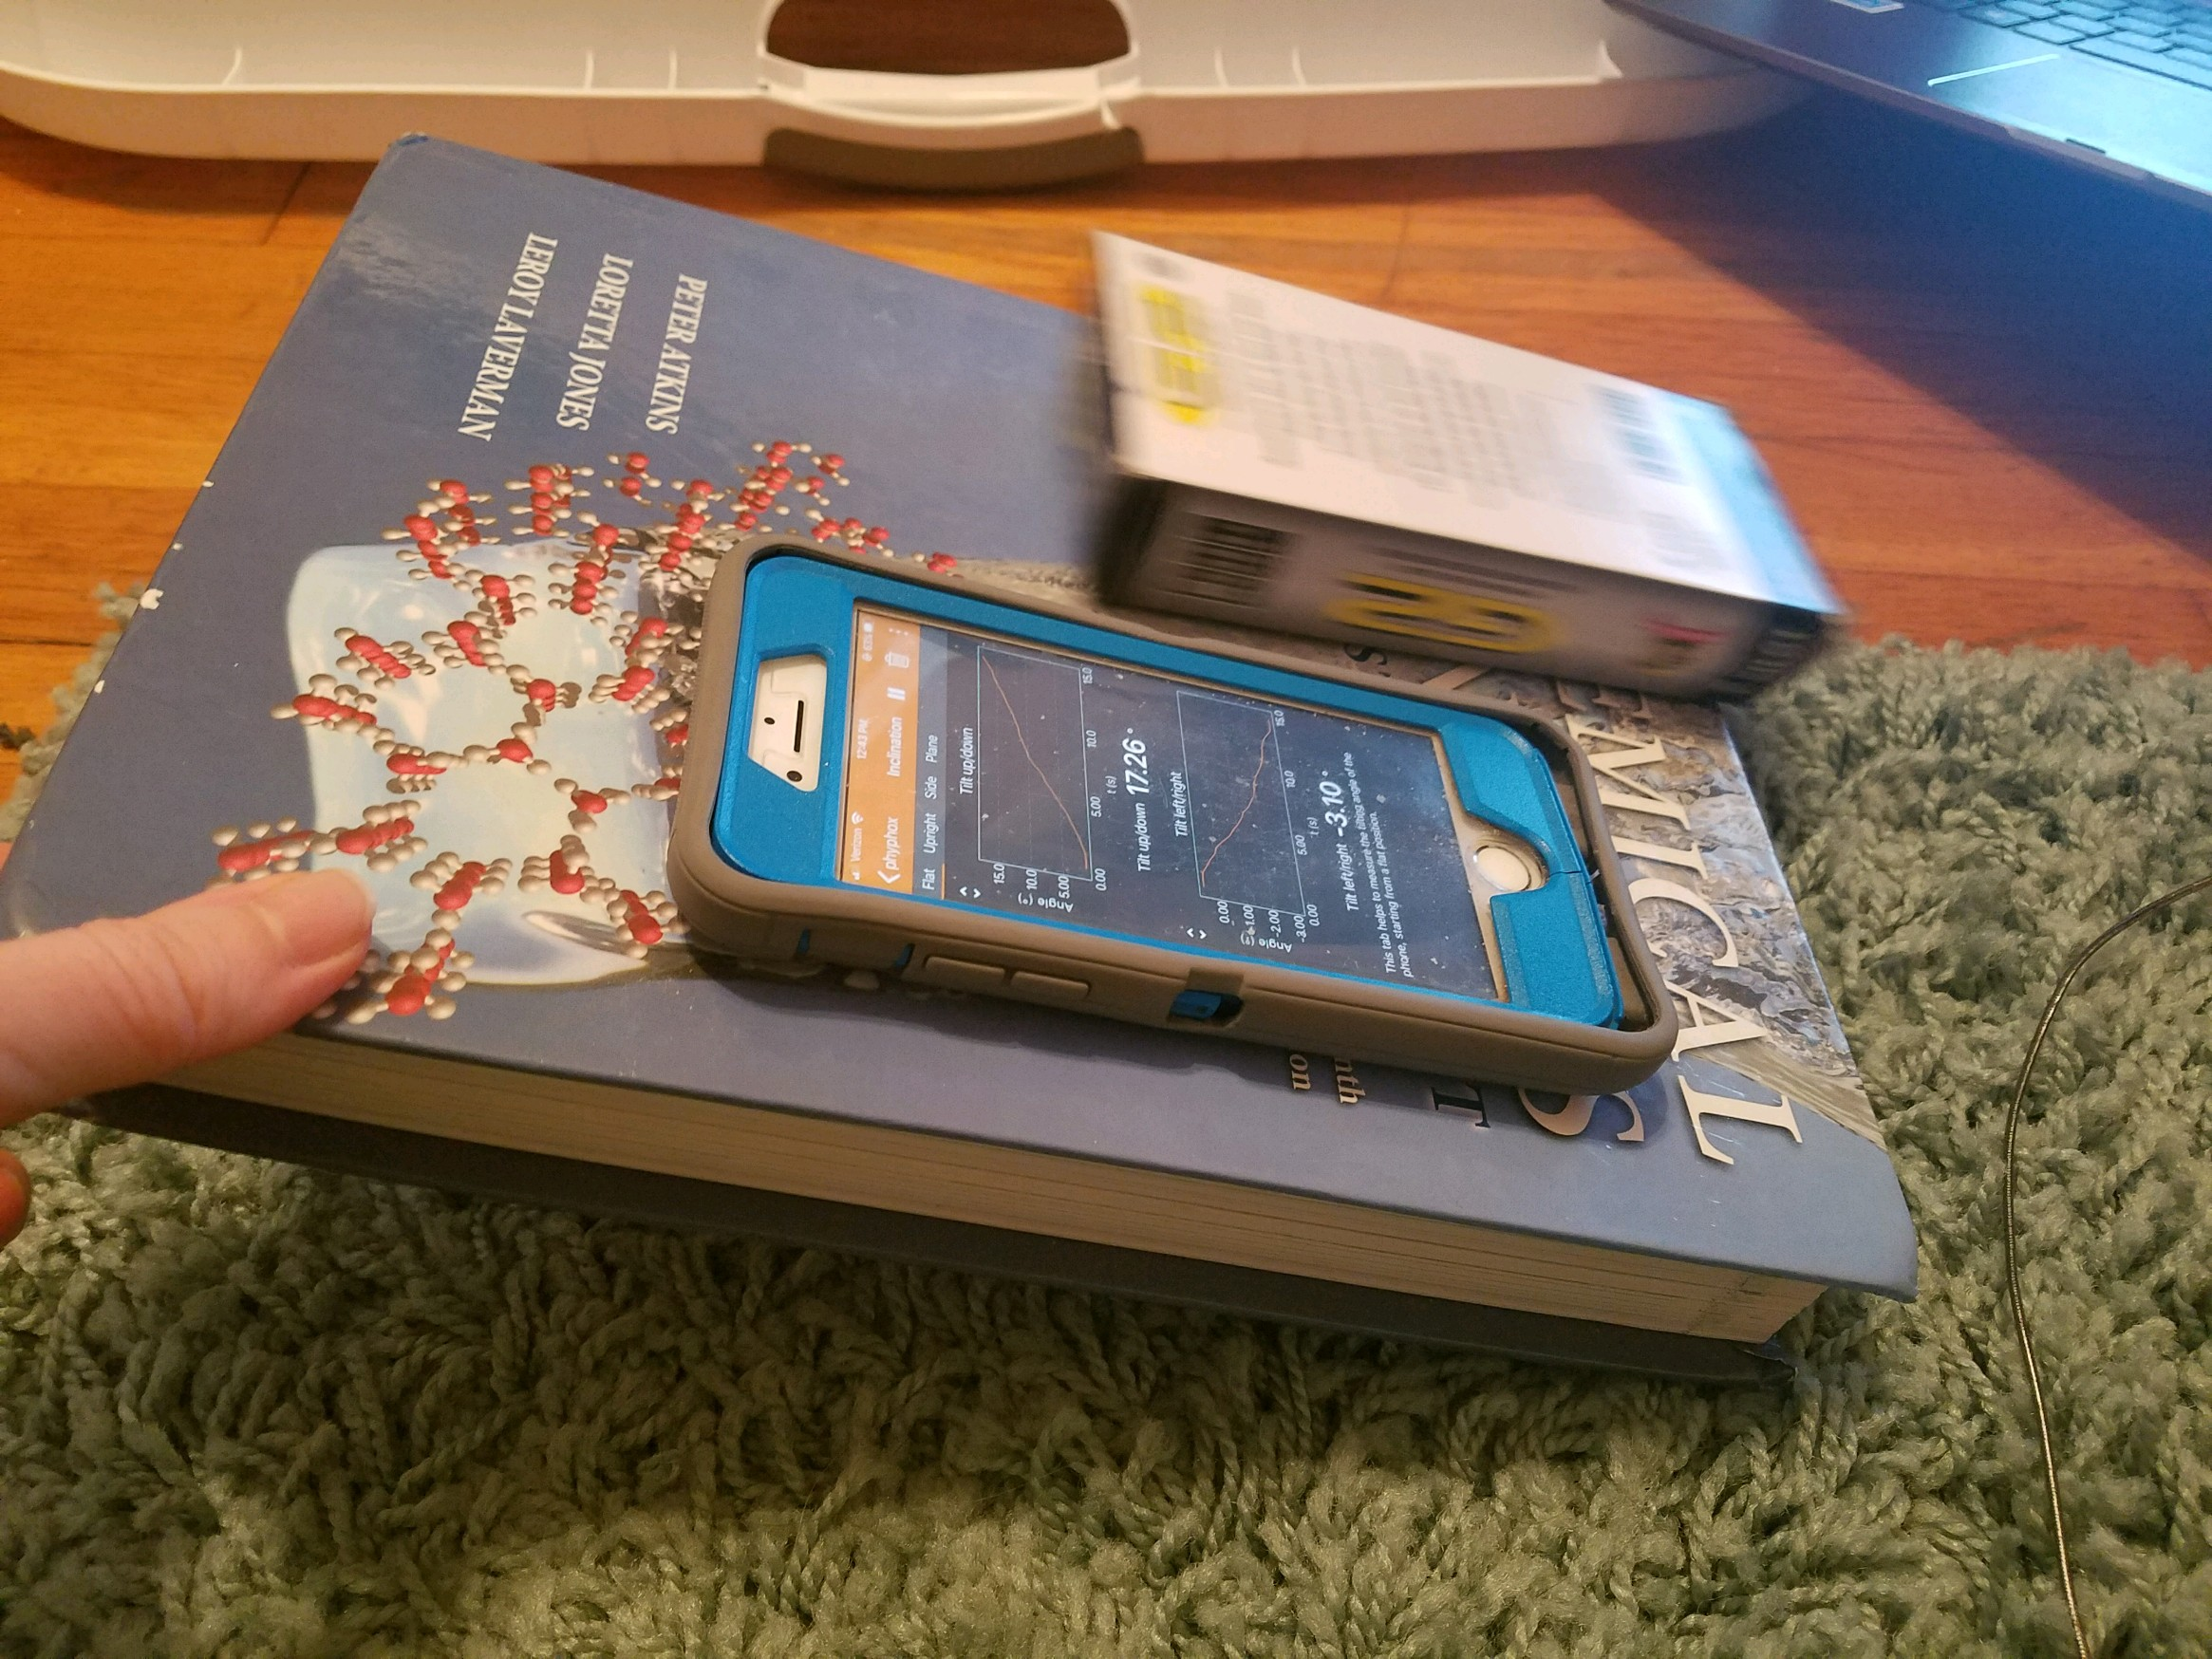 Phone and pen box on a tilted textbook.